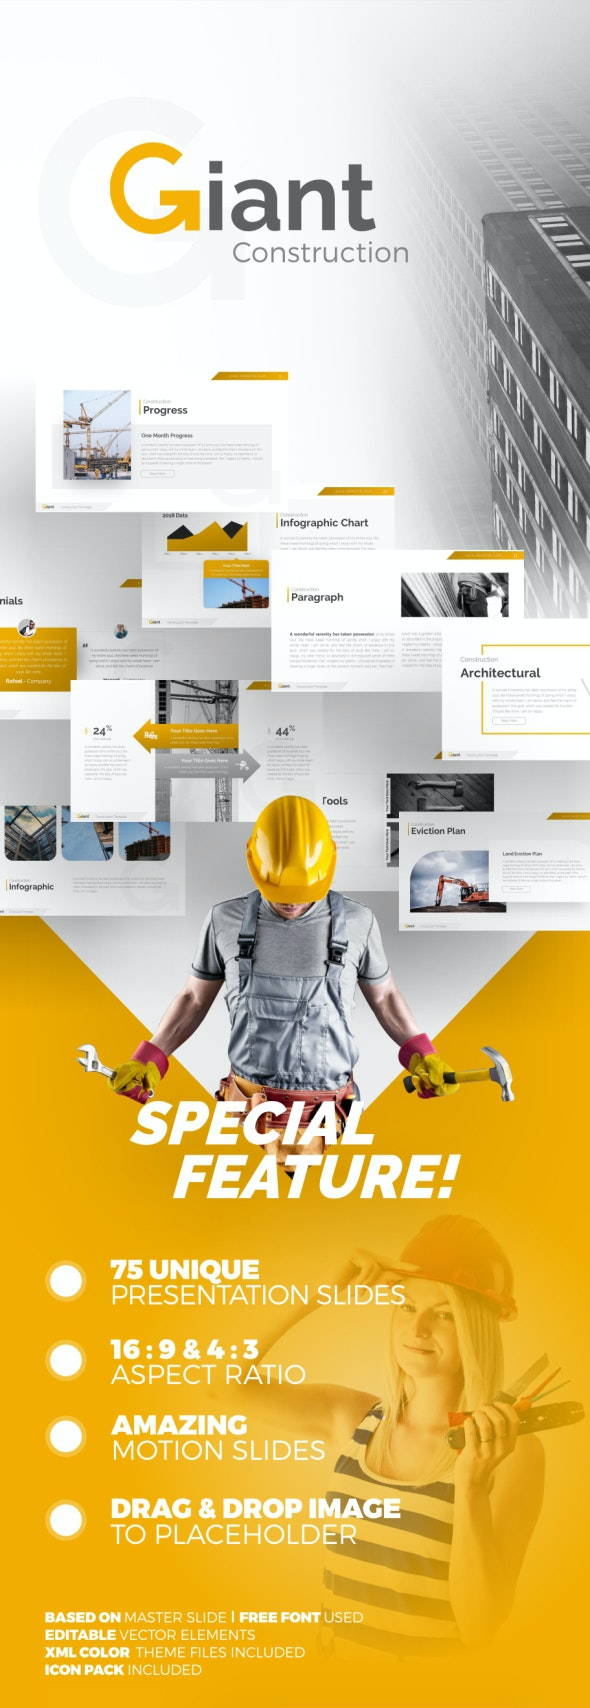 Giant Construction PowerPoint Presentation Template by